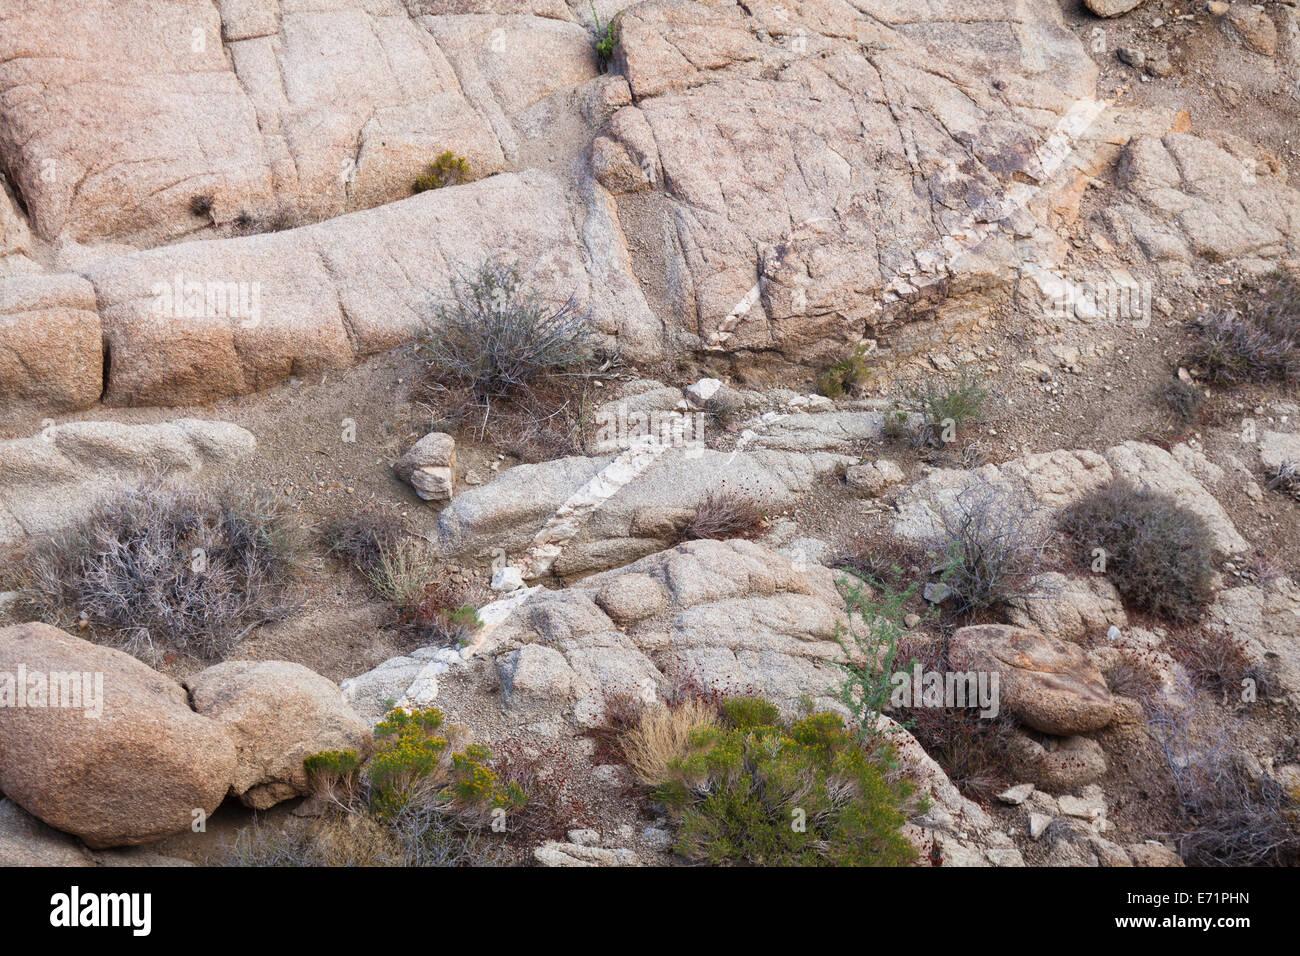 Unique monzogranite rock formations with aplite vein - USA - Stock Image